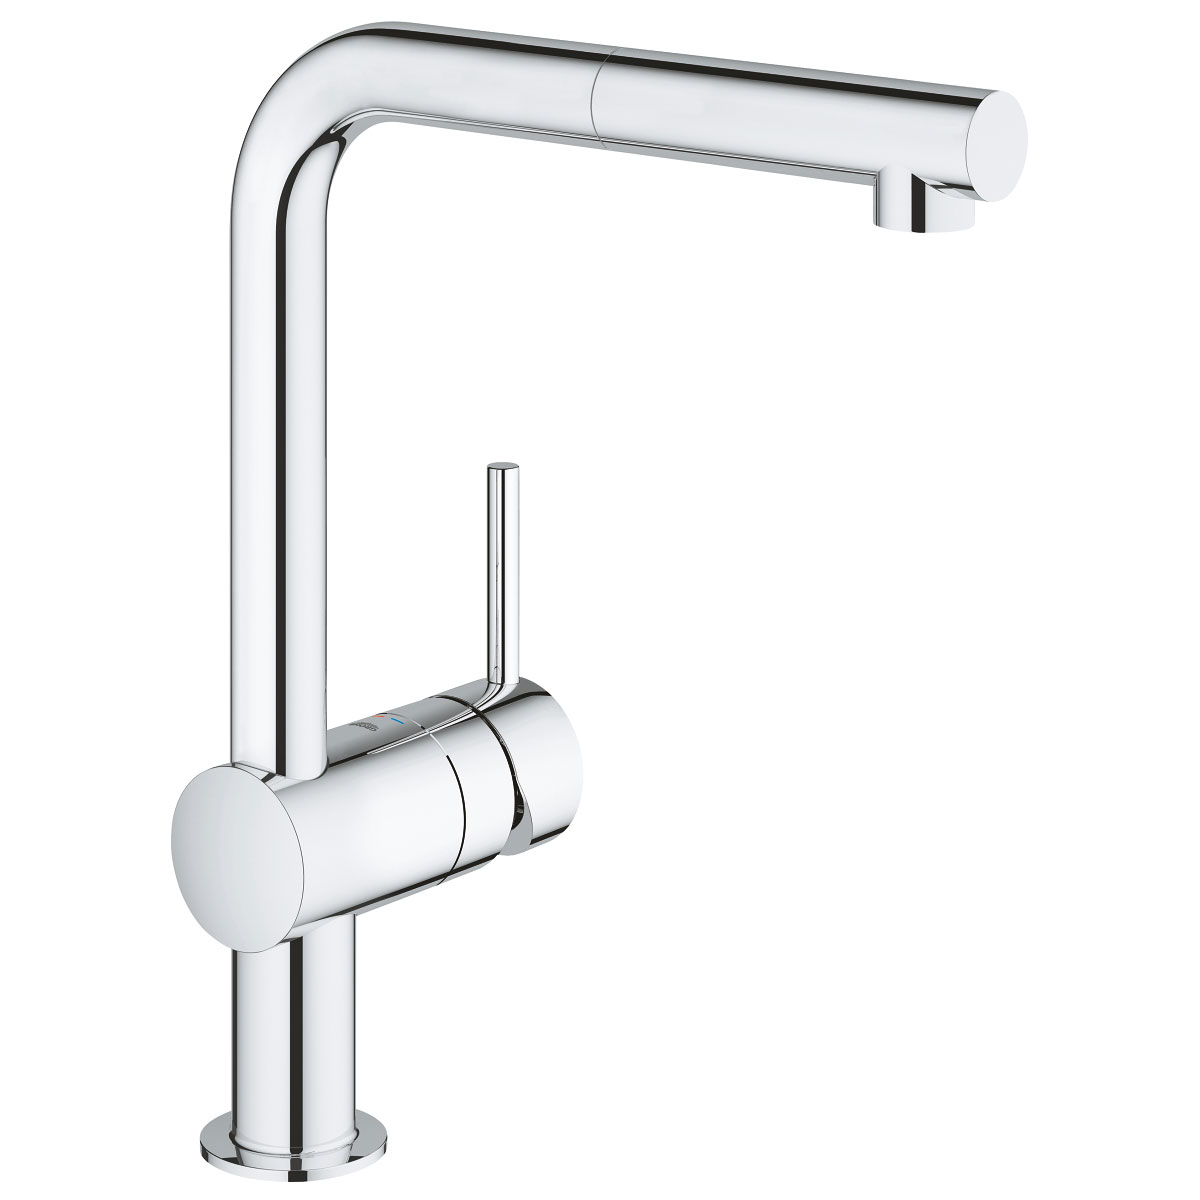 Grohe Minta Mono Kitchen Sink Mixer Tap, Pull-Out L-Spout, Single Handle, Chrome